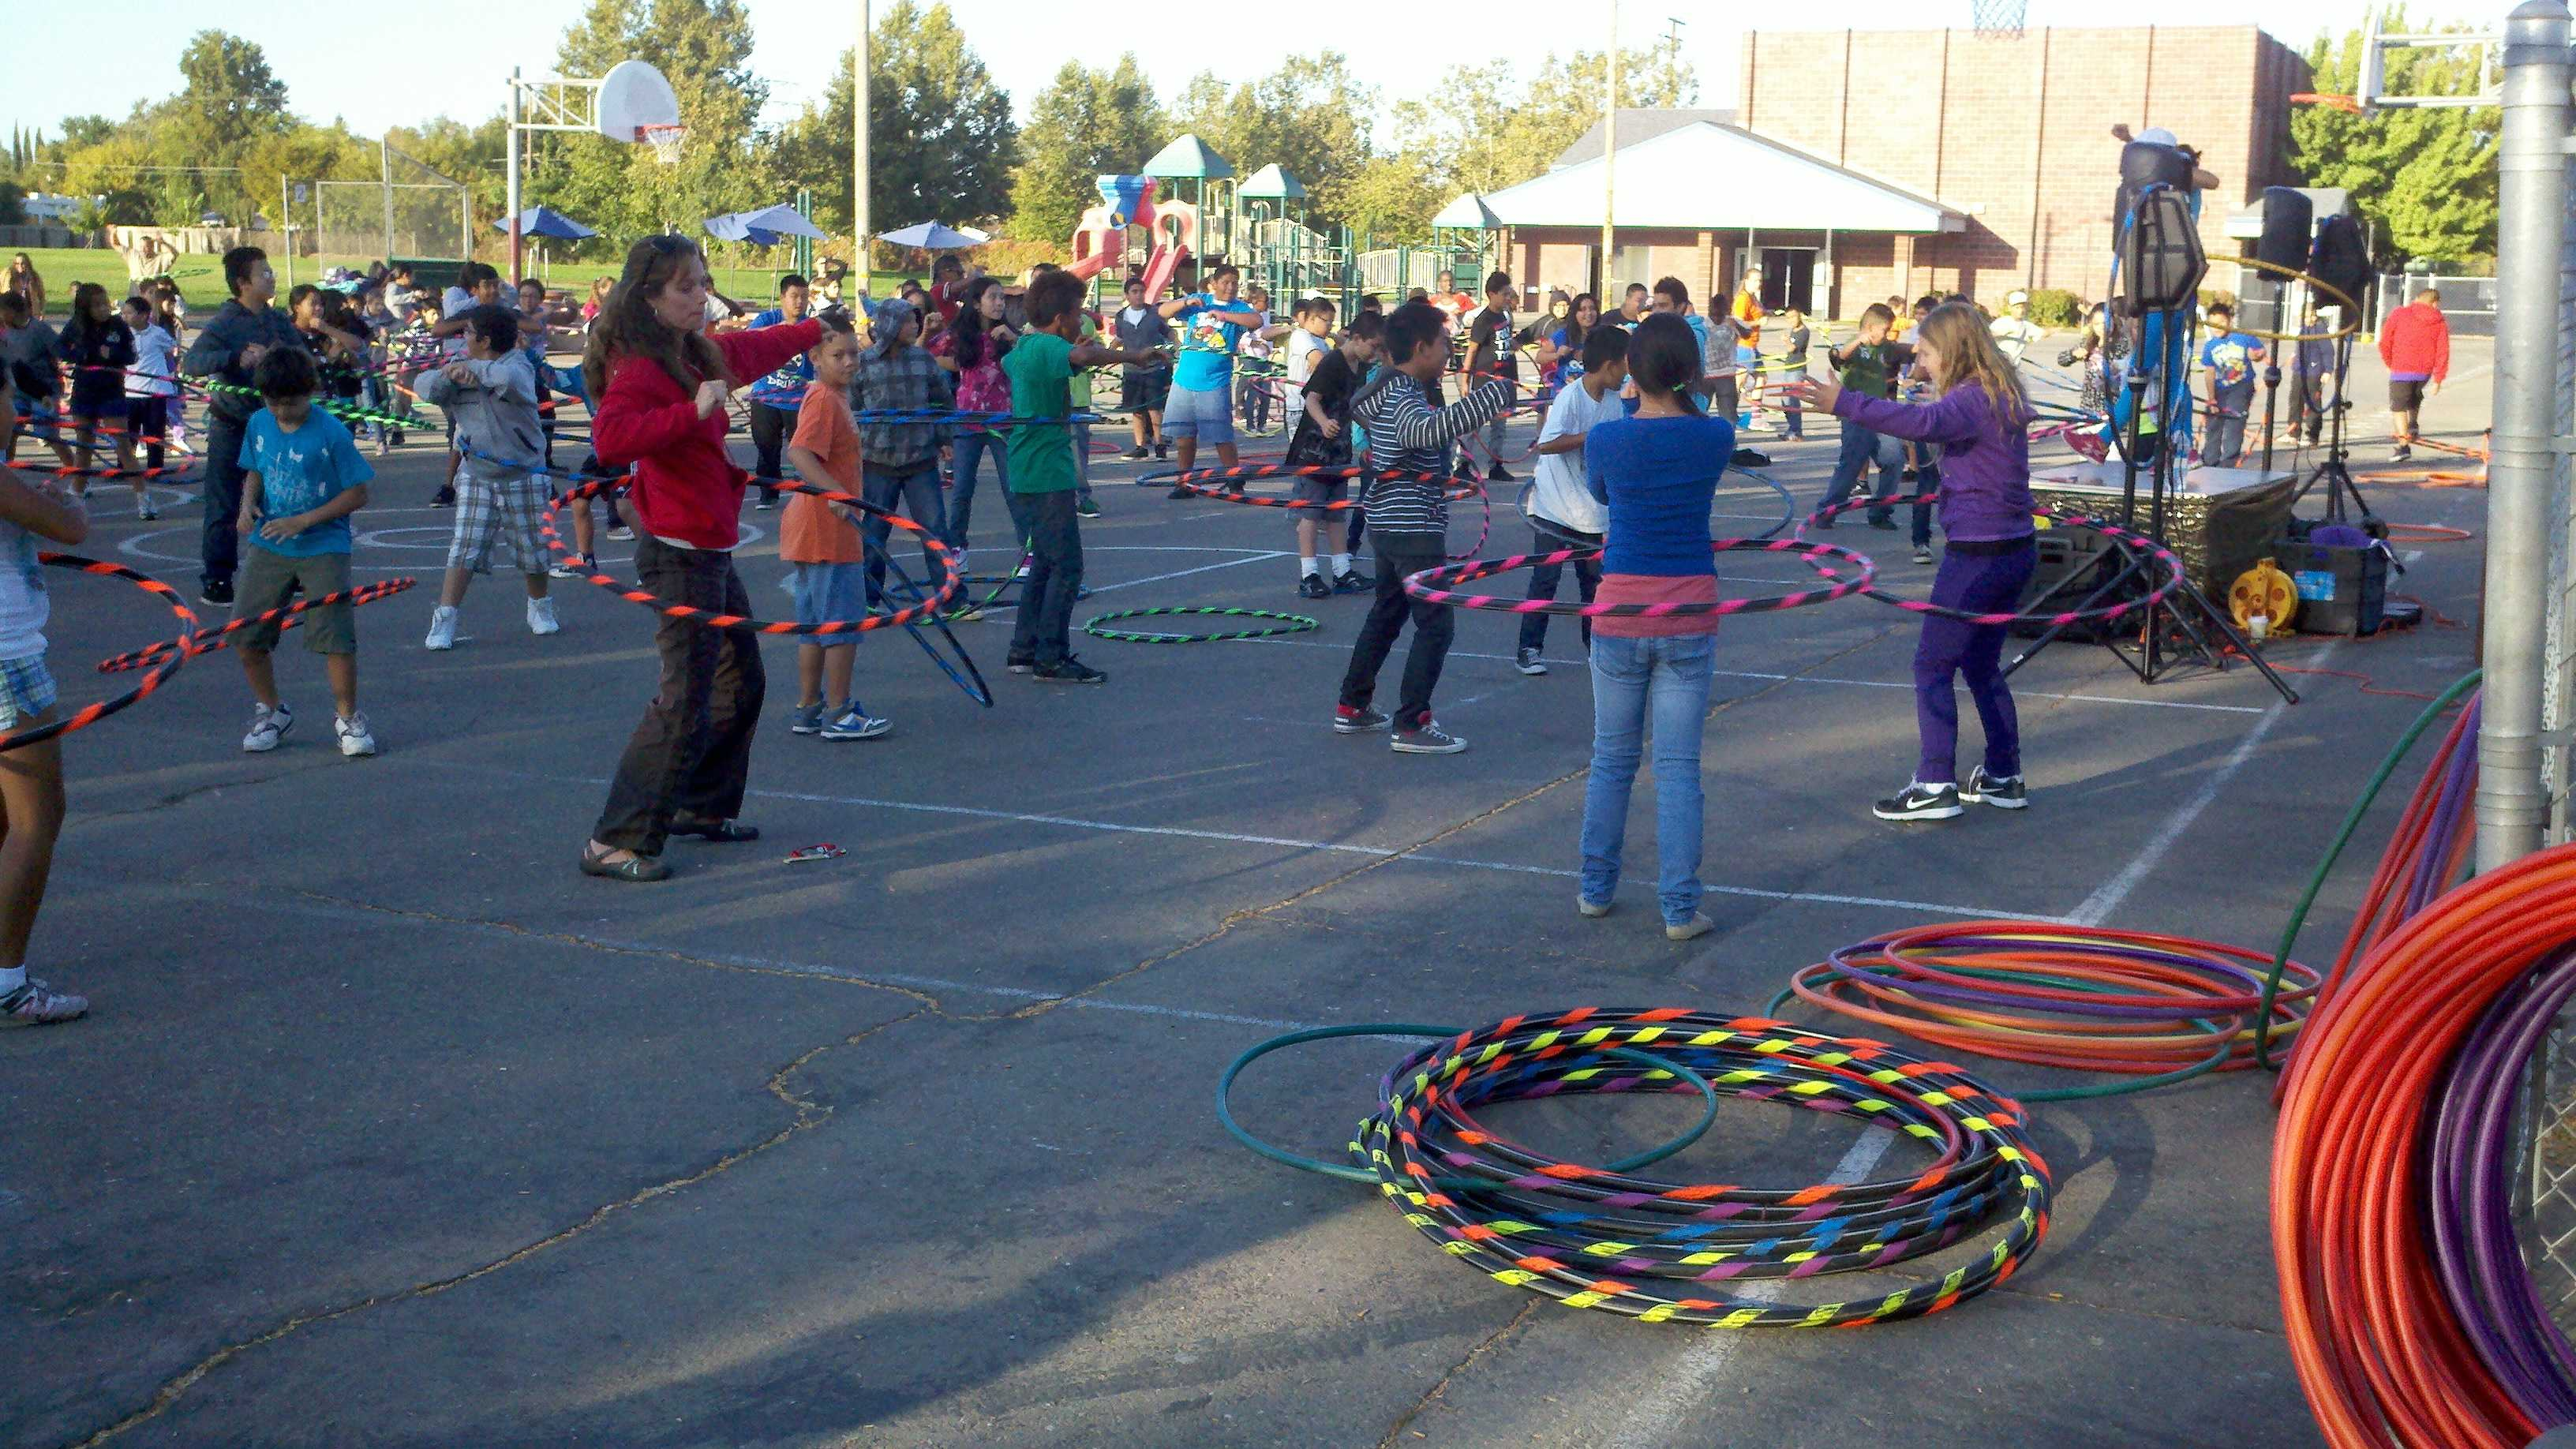 Students at Florin Elementary hula hoop.